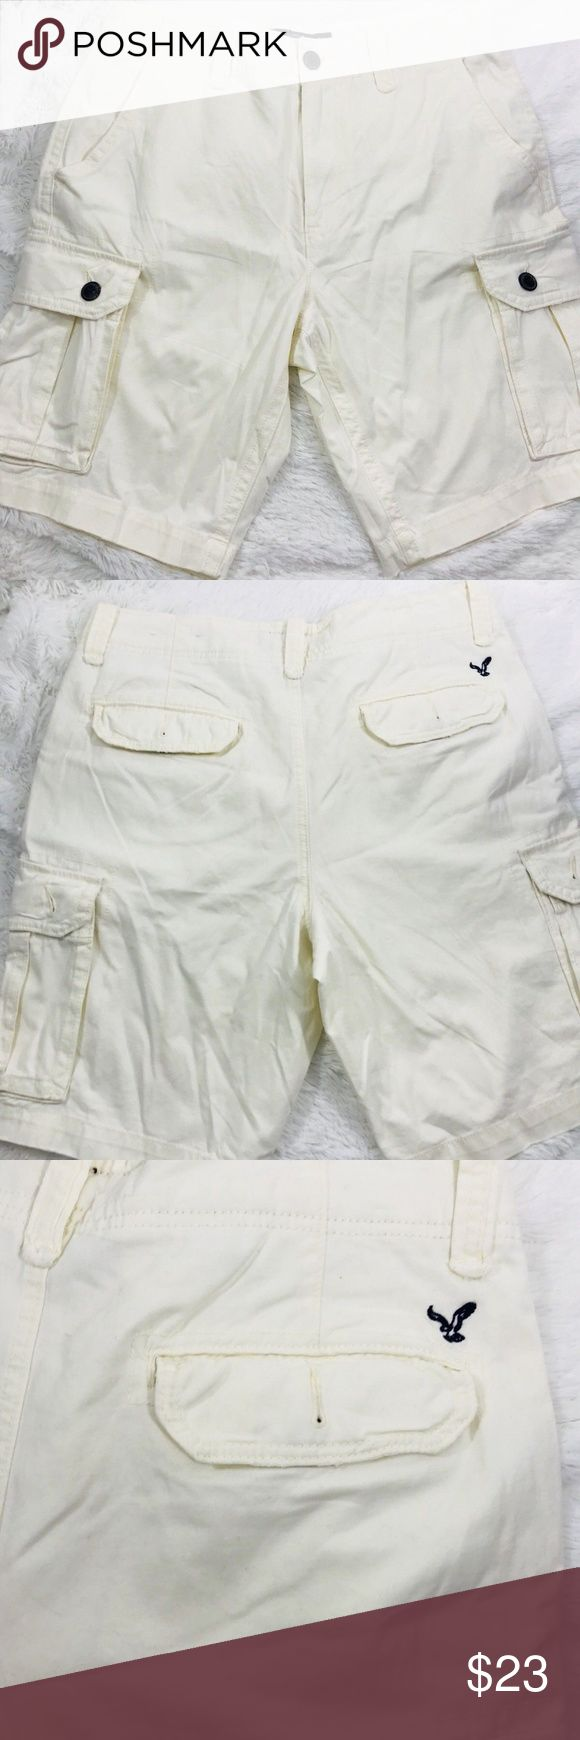 American Eagle Flex Classic Cargo Shorts Size 33 American Eagle Flex Classic Cargo Shorts Khaki Ivory Size 33  New With Out Tag's 100% Authentic   Any Questions Please Ask Before Purchasing  Will Ship With In 24 Hours   Check Out Our Other GREAT Items In Our POSH Closet American Eagle Outfitters Shorts Cargo